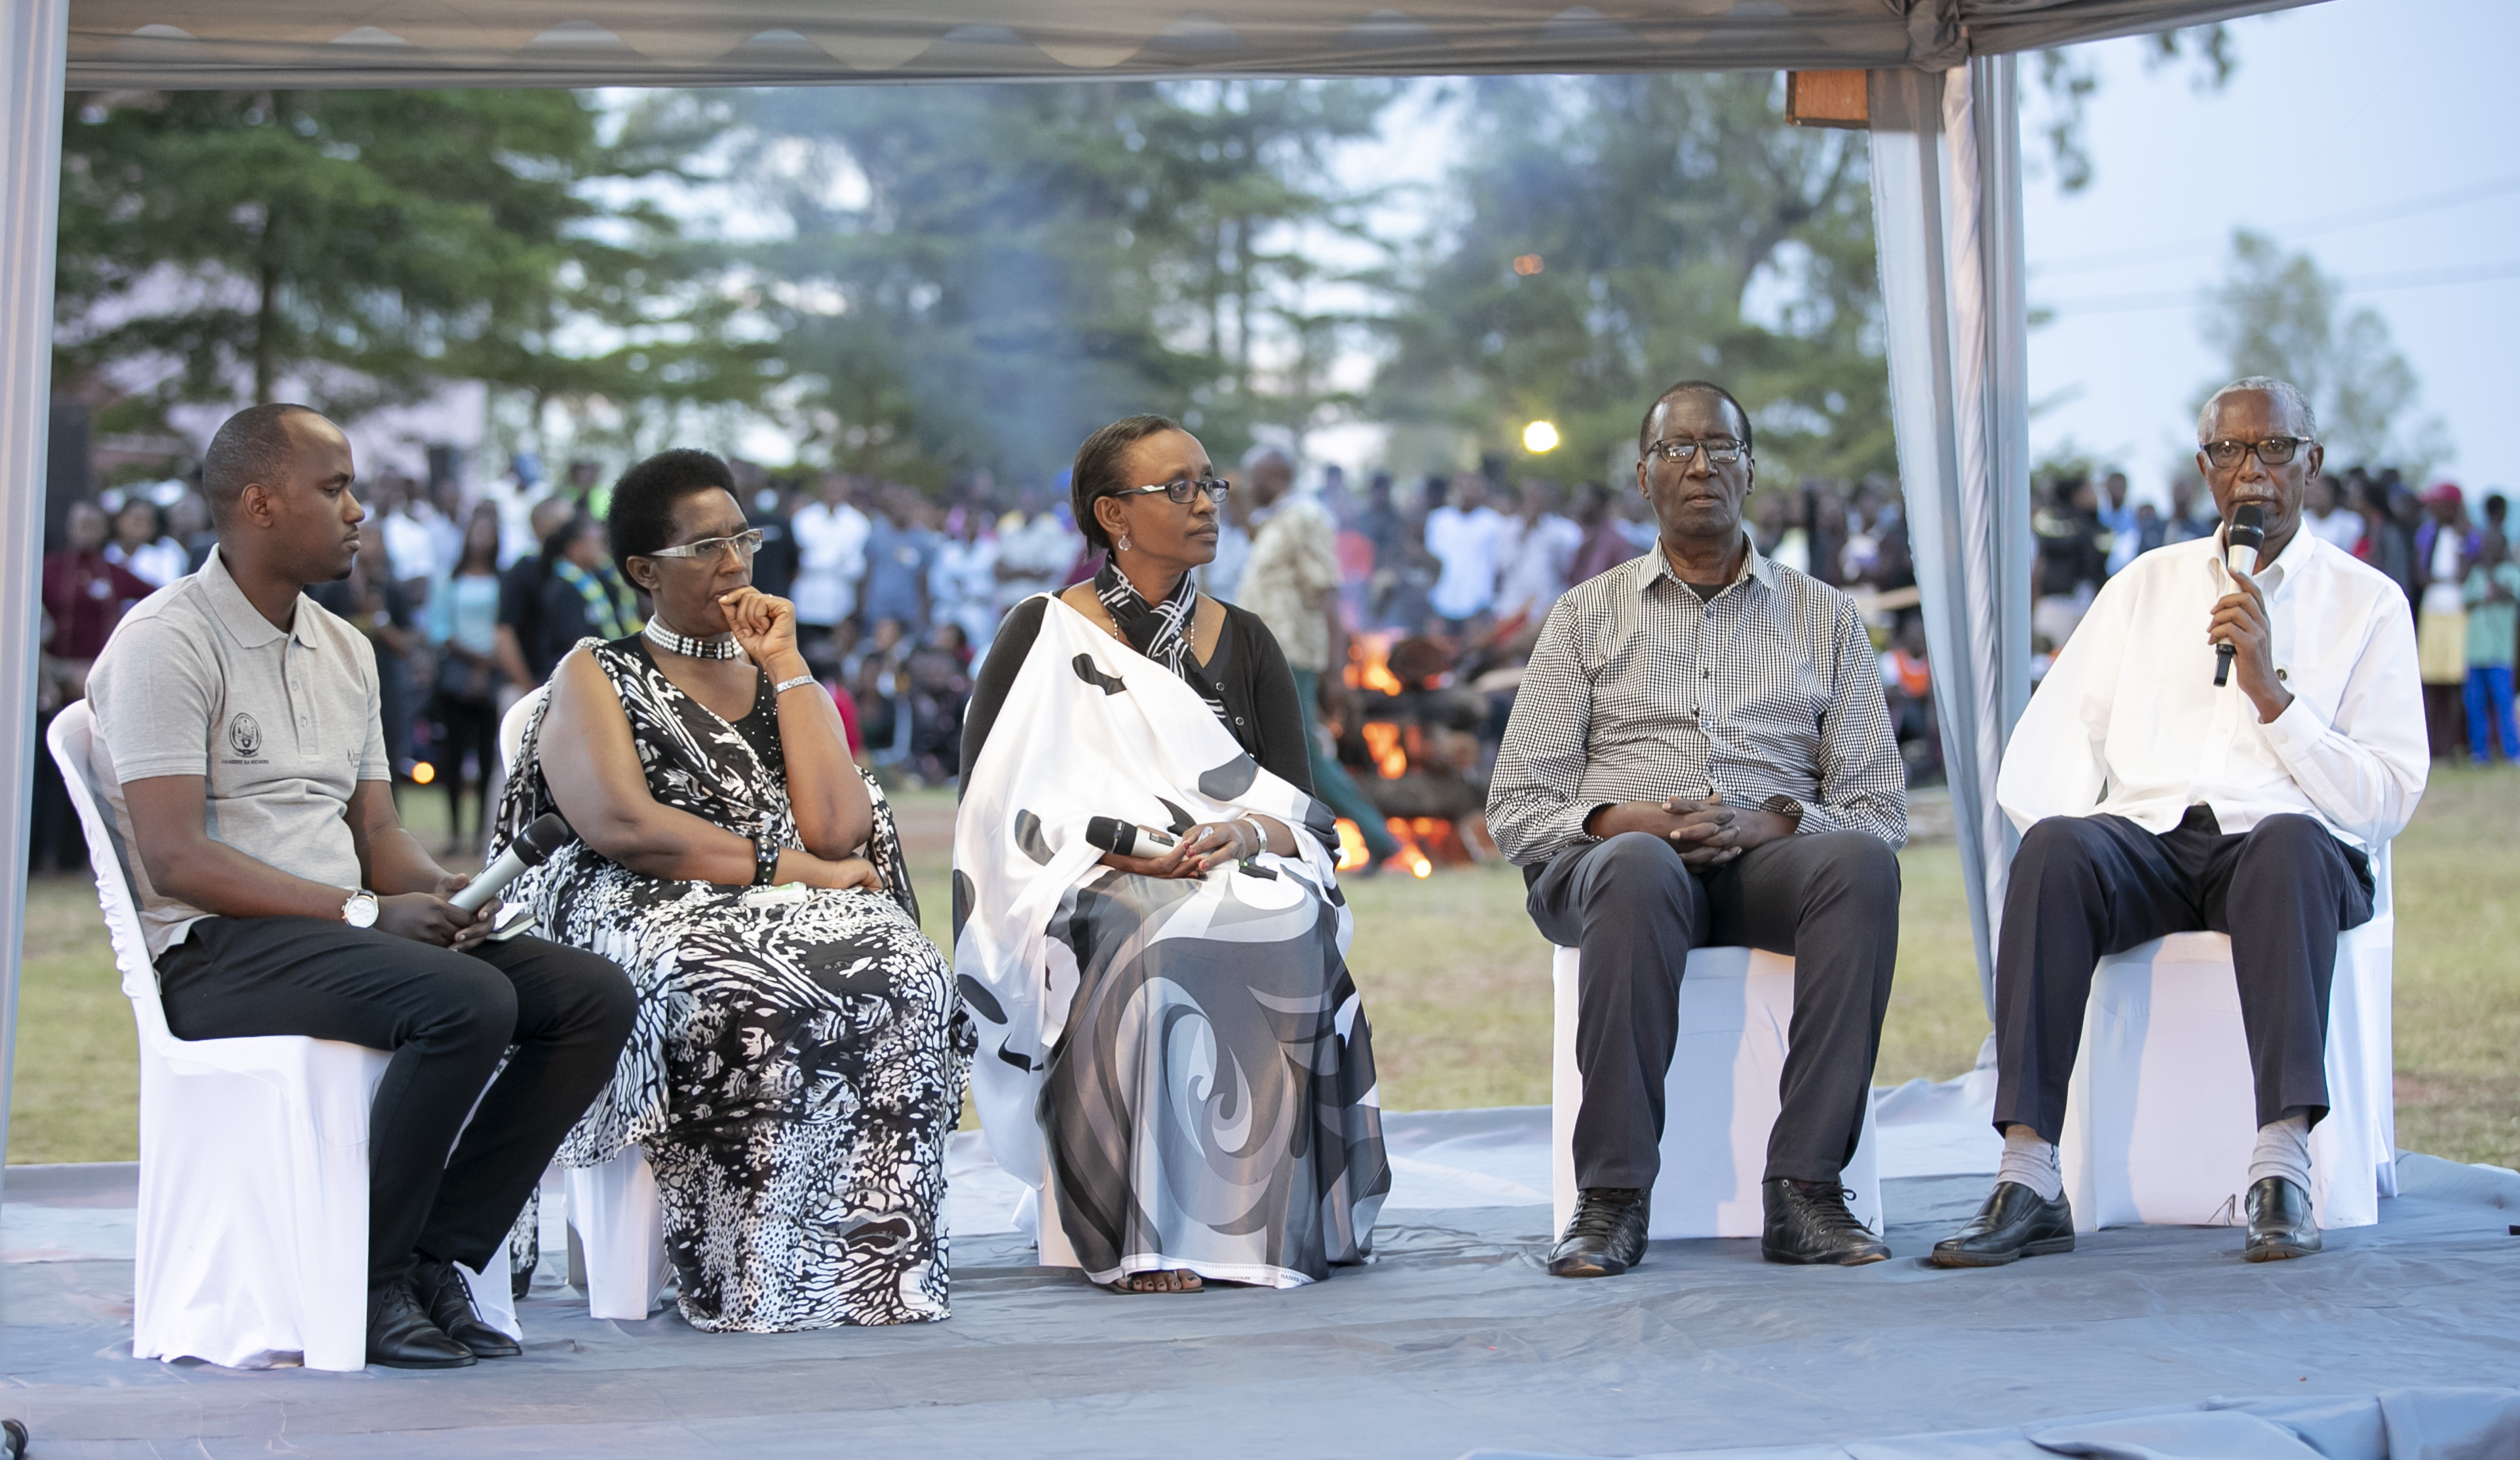 Over 11,000 convene at Nyanza to remember Tutsis abandoned by UN peacekeepers in the hands of Interahamwe.